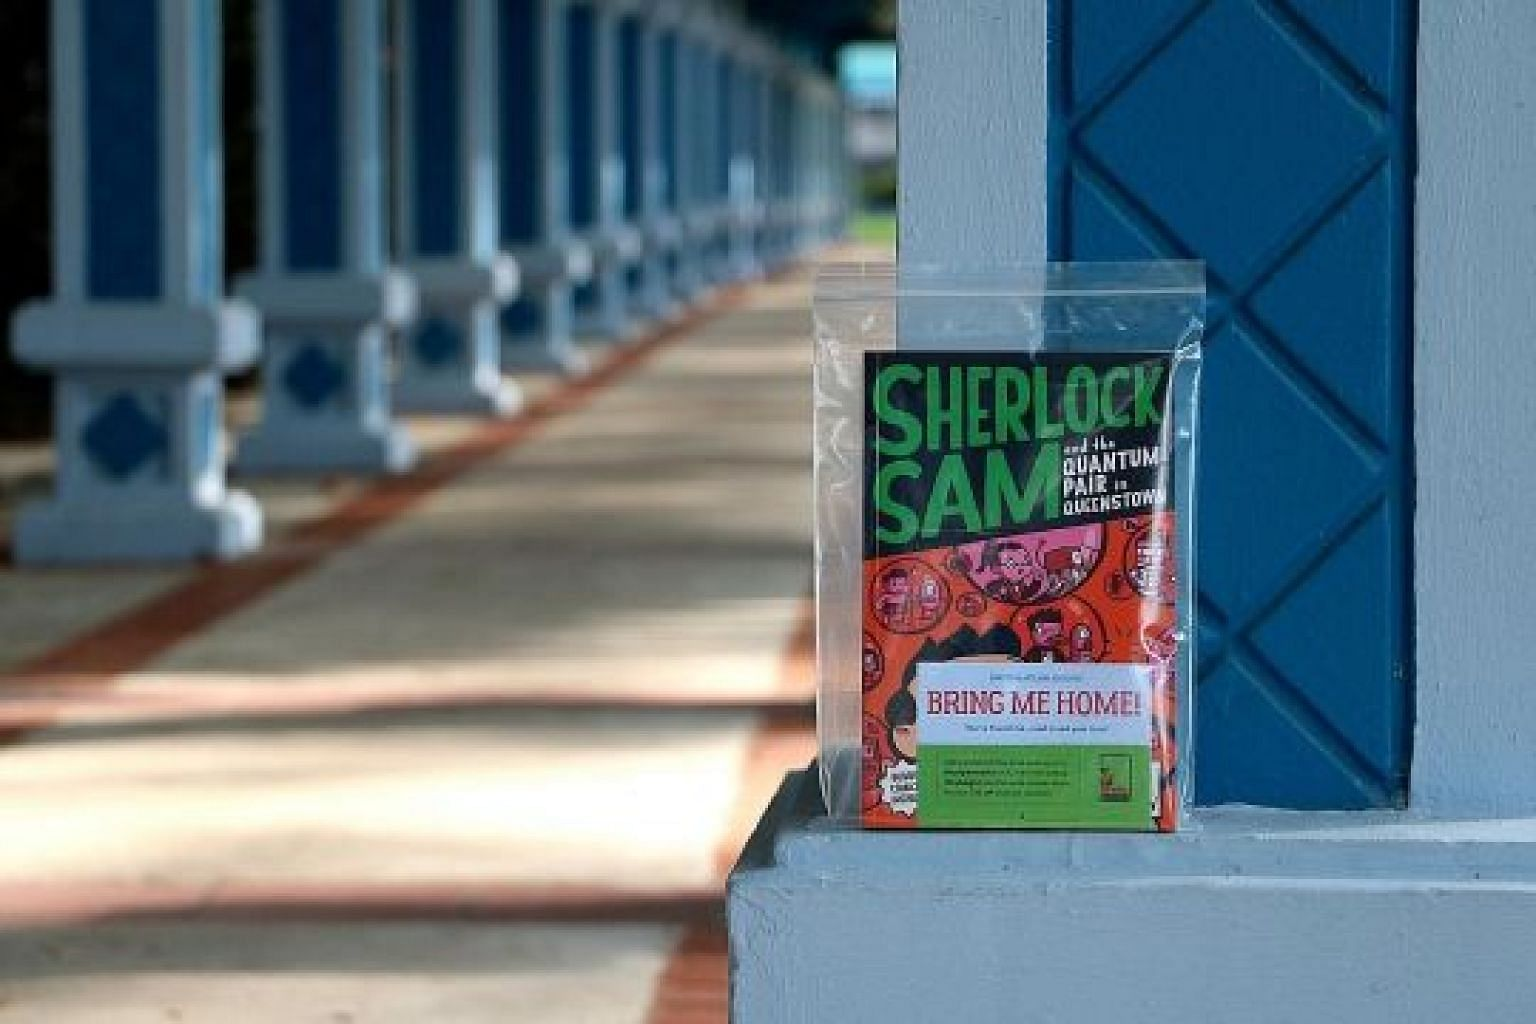 Local publisher Epigram Books will hide 50 books in five heartland areas until Monday as part of The SingLit Heartland Book Drop campaign. It is part of the #BuySingLit movement, which supports local writers.